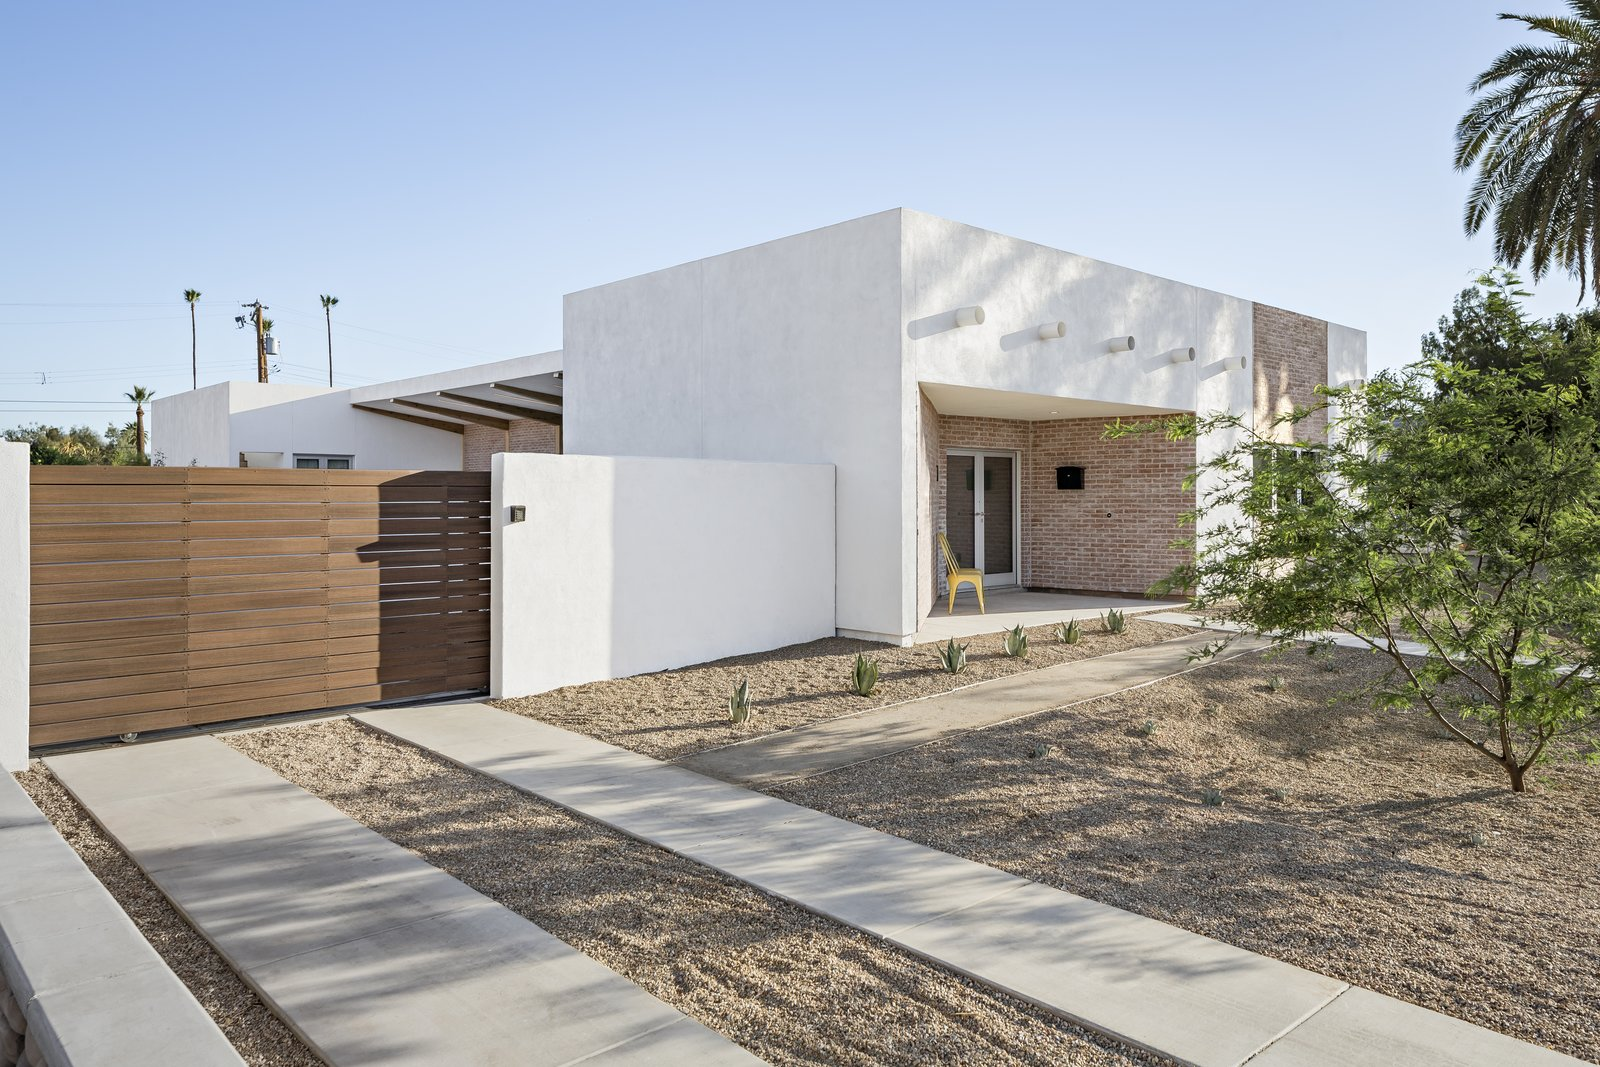 #modern #southwestern #infill #newbuild #historic #phoenix #arizona  Desert Homes by Heather Corcoran